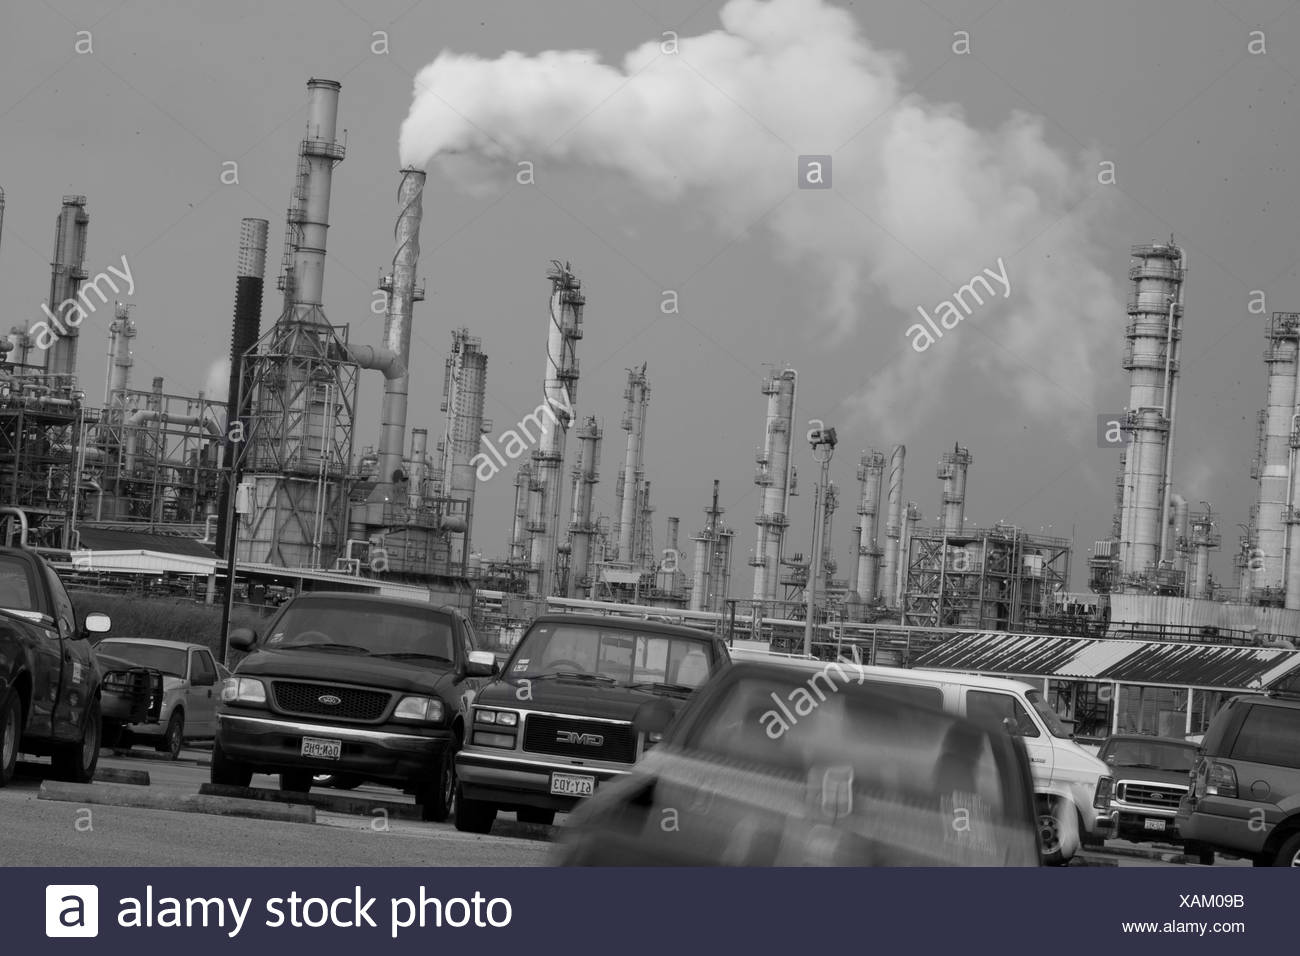 Oil refinery effects in Corpus Christi Texas. - Stock Image